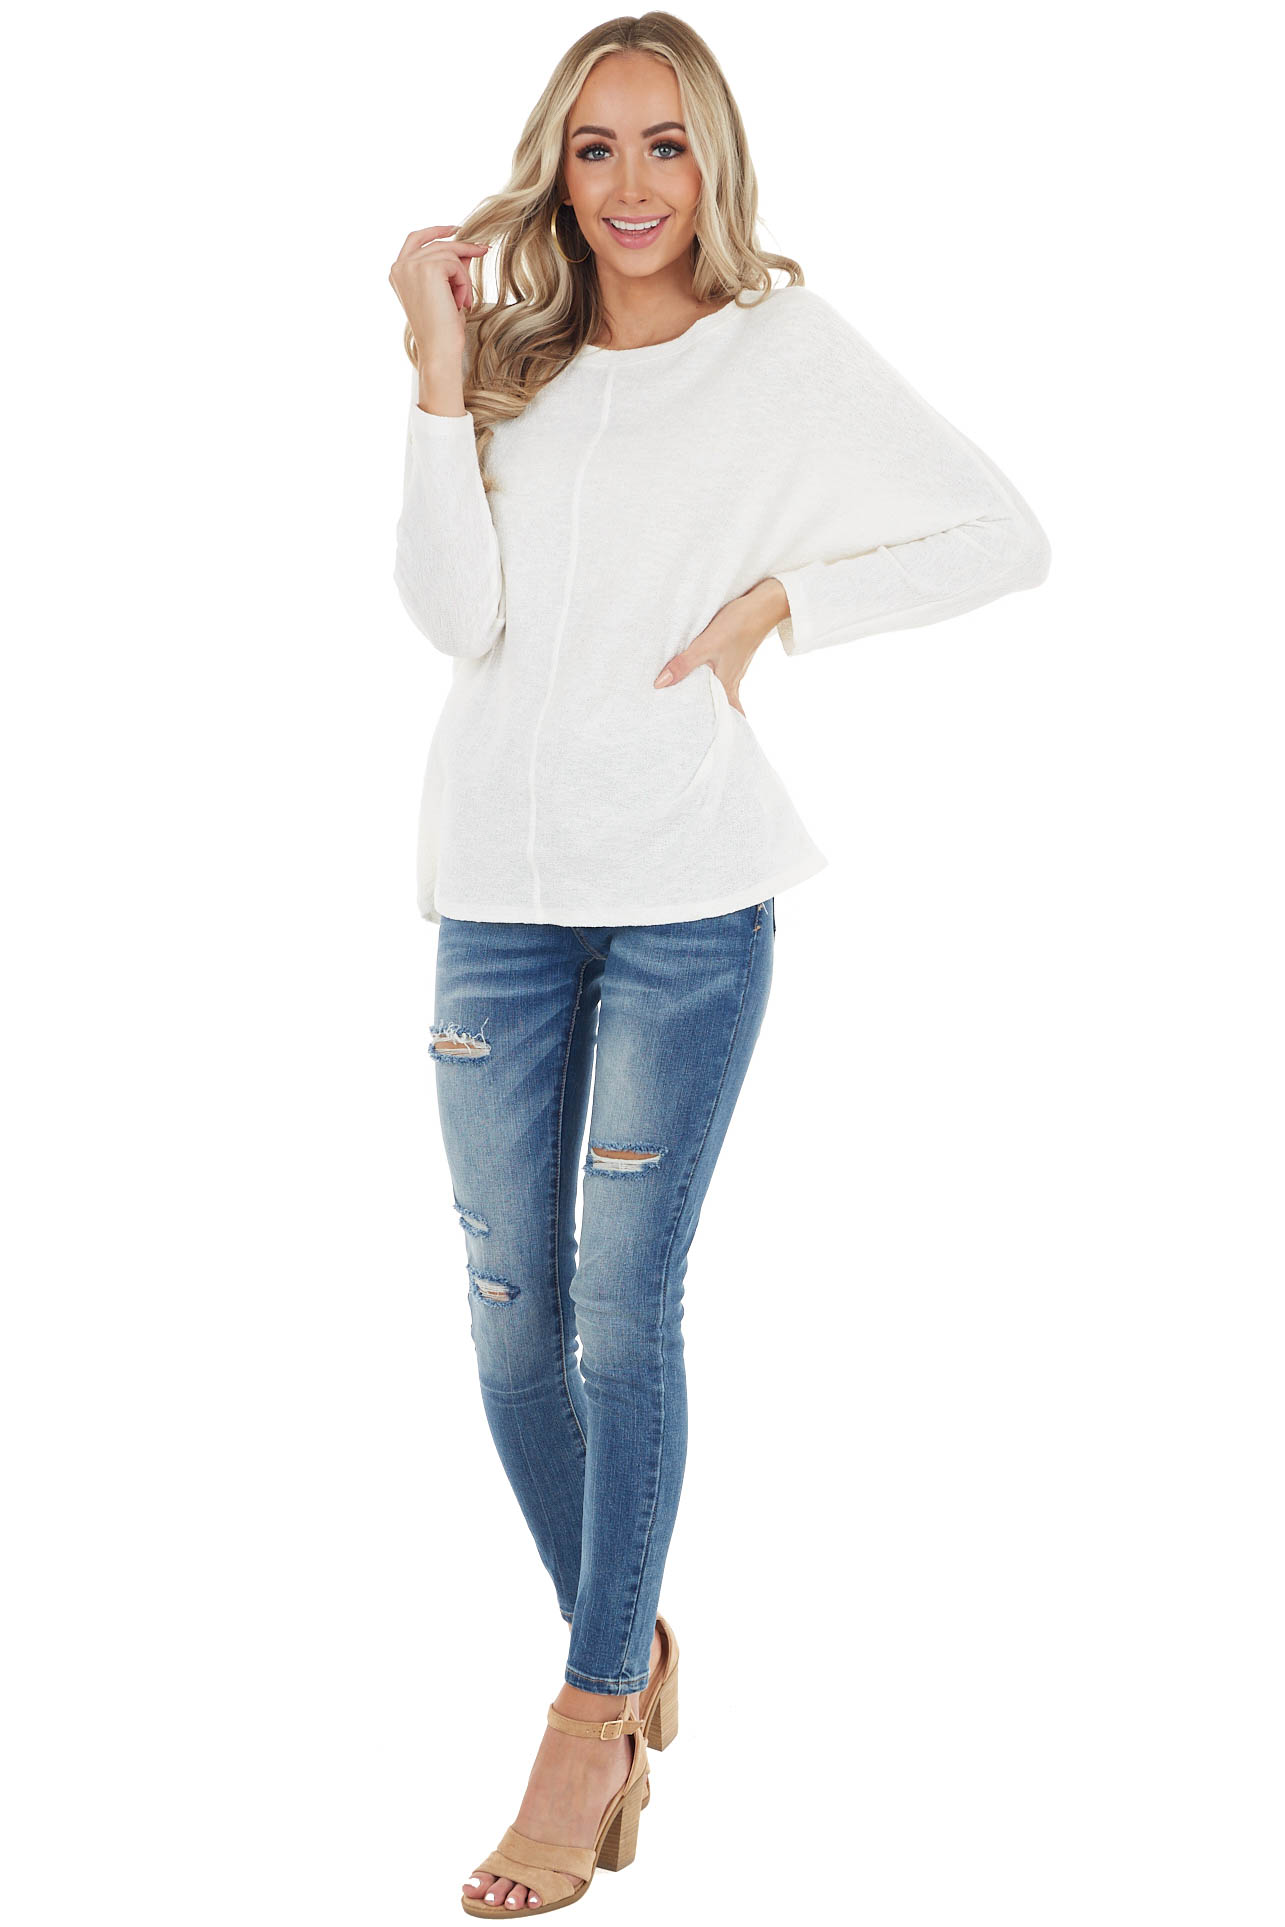 Ivory Stretchy Textured Knit Top with 3/4 Dolman Sleeves